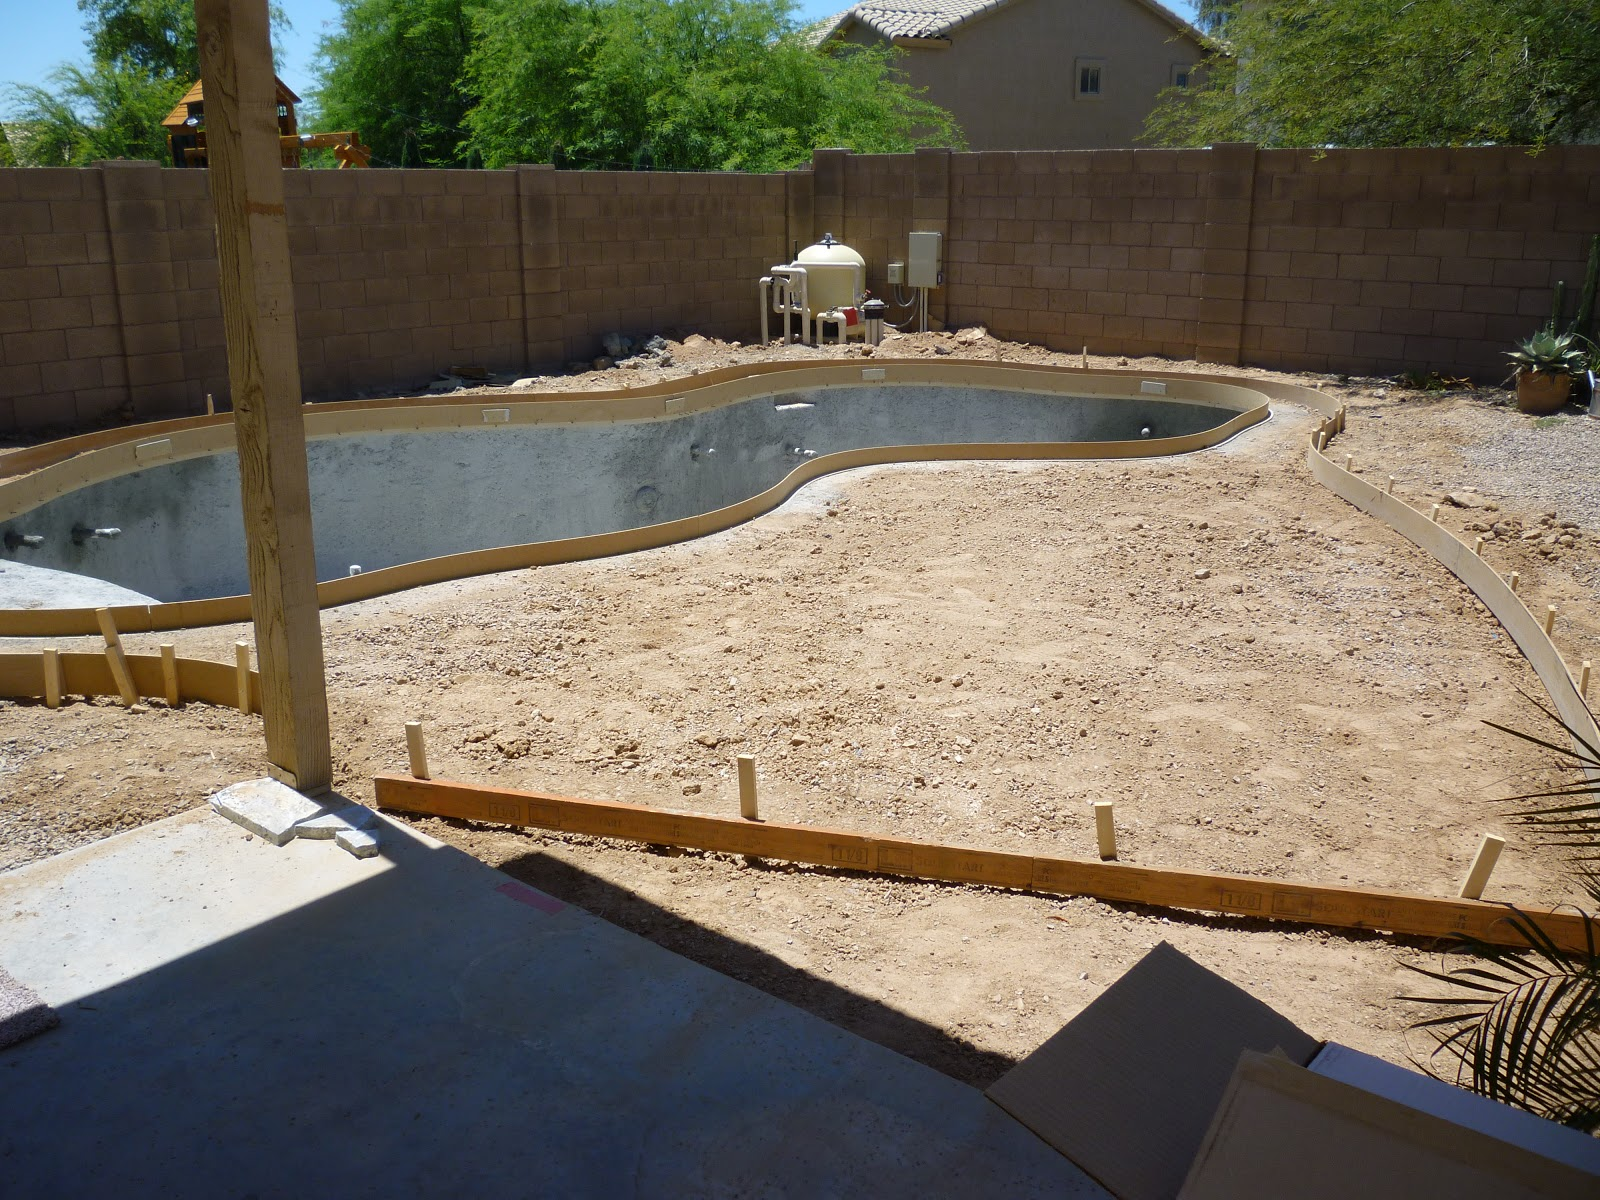 a stroll thru life pool update one more week to finish